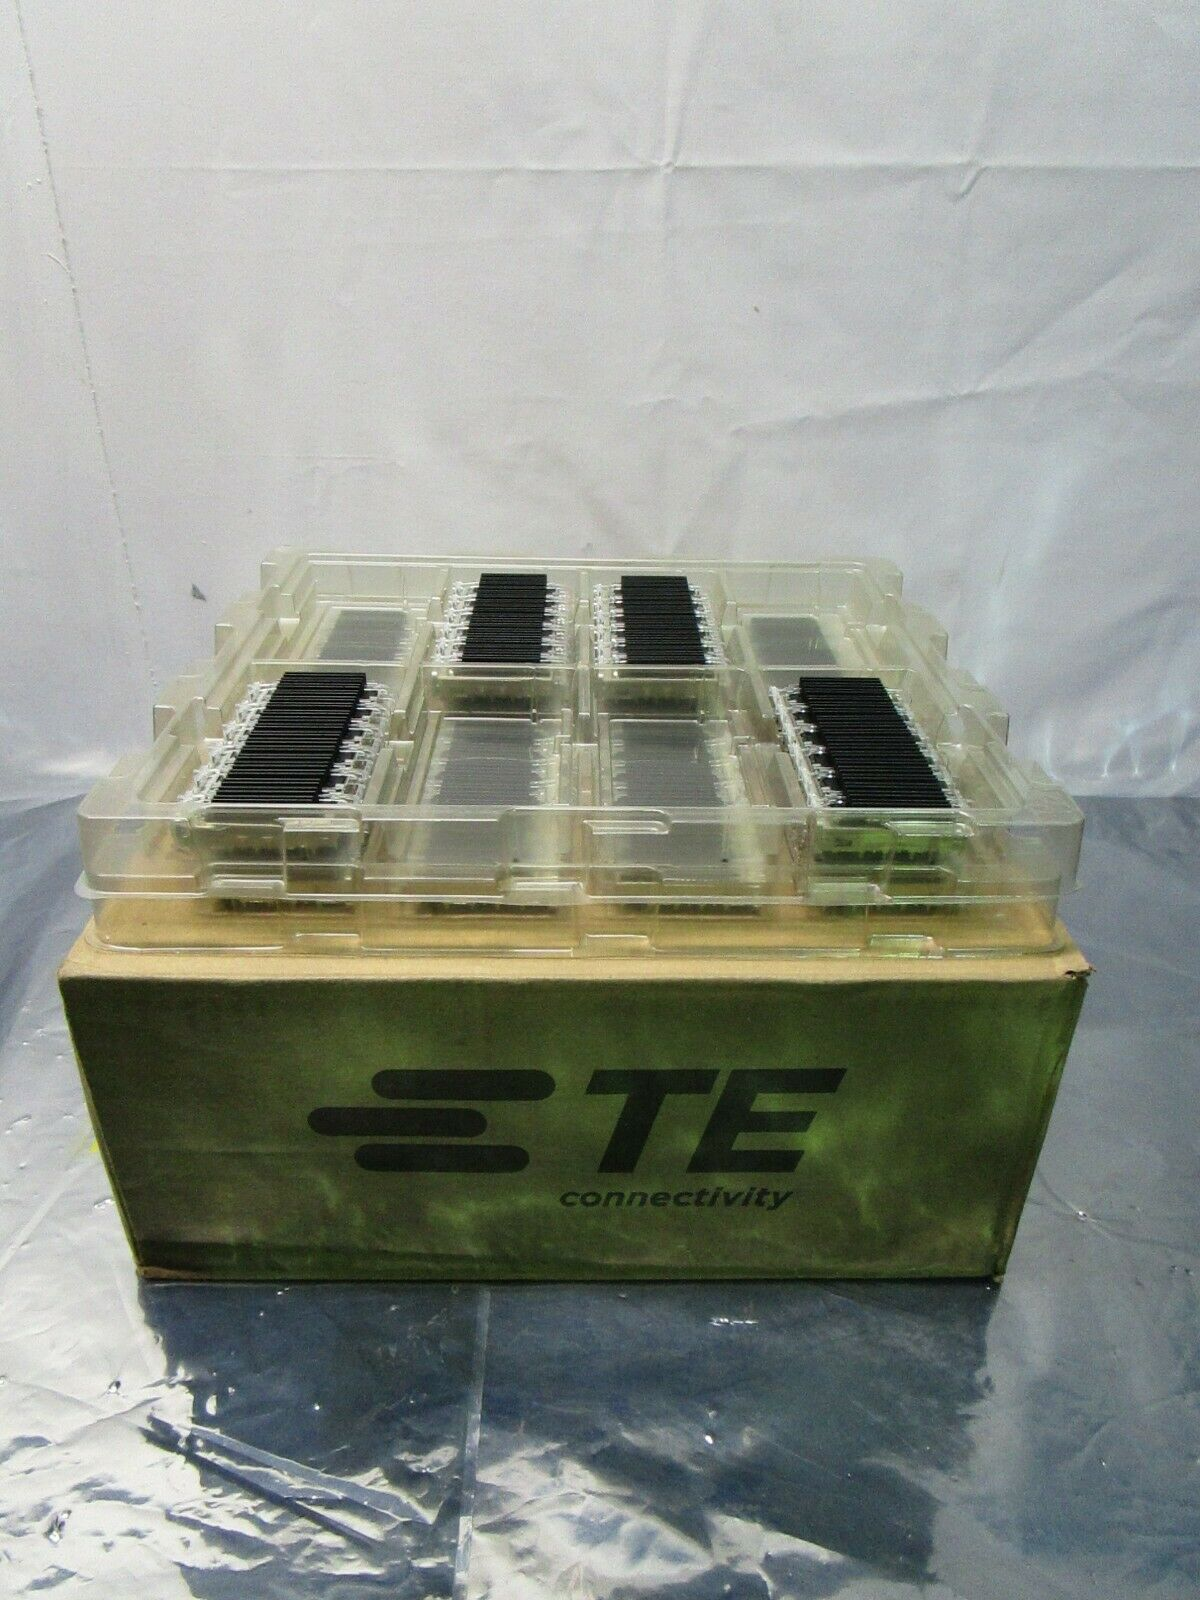 1 Lot of 12 TE connectivity AMP Brand 2170551-1 1X6 CAGE ASSEMBLY, 102510